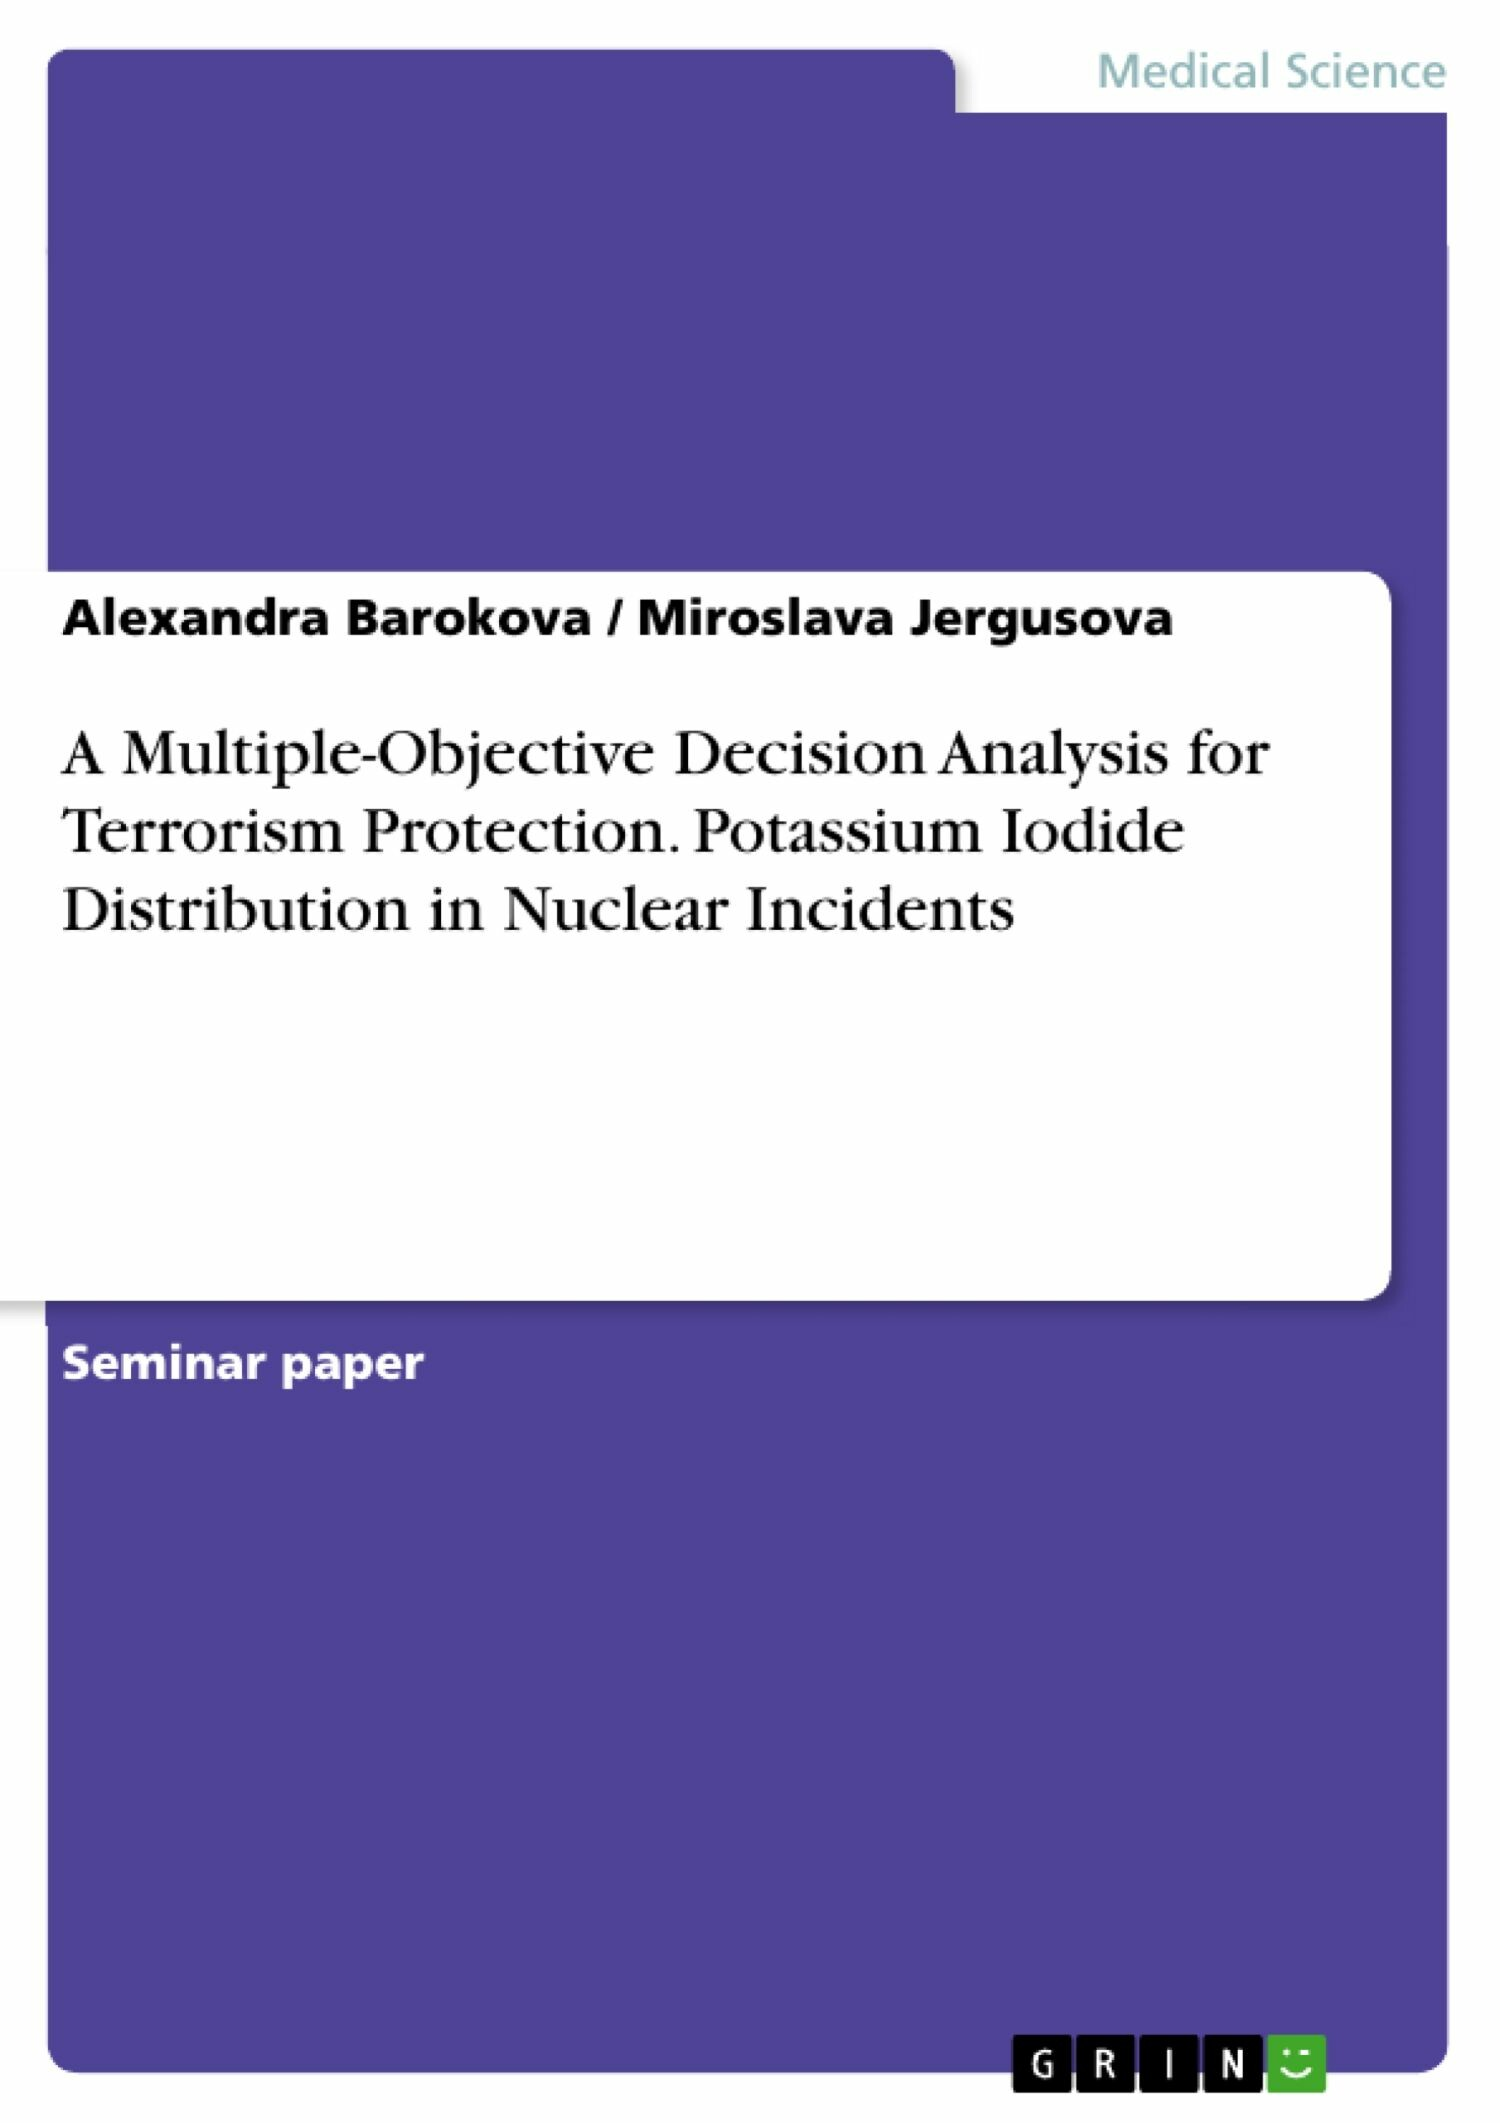 A Multiple-Objective Decision Analysis for Terrorism Protection. Potassium Iodide Distribution in Nuclear Incidents